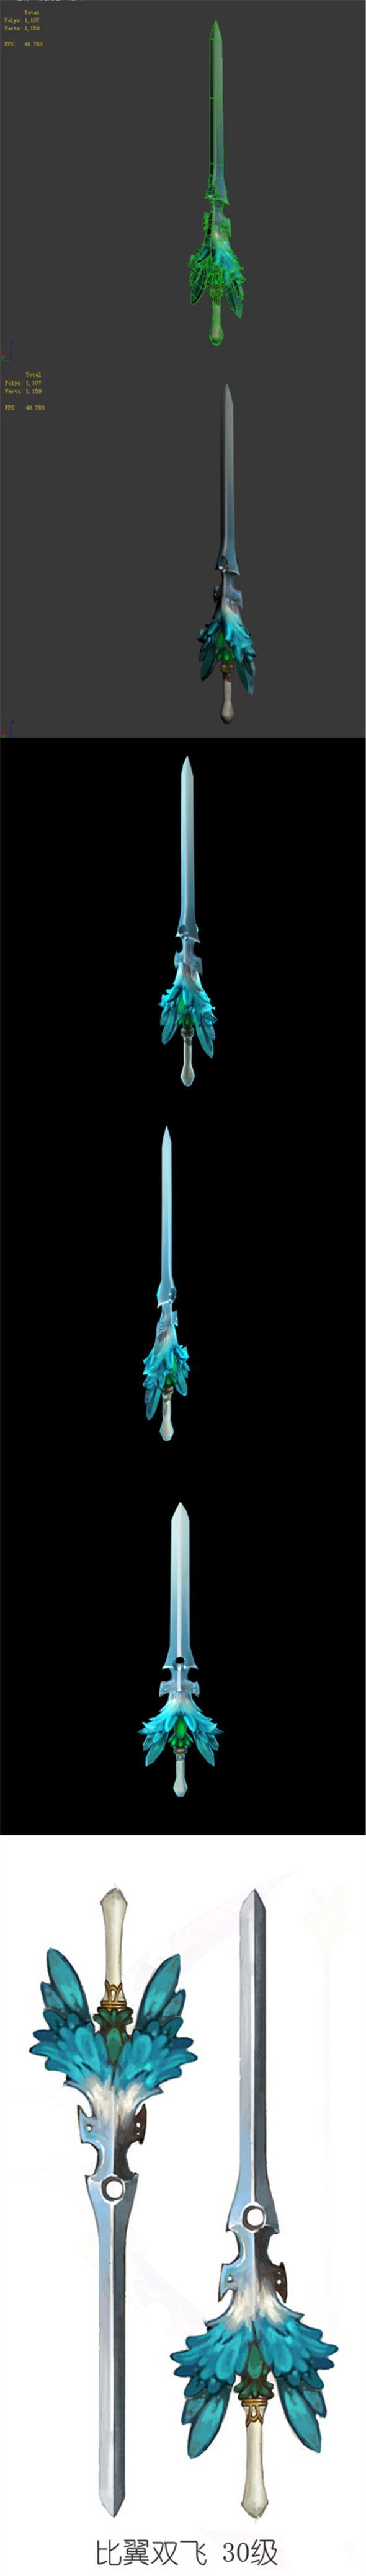 Game characters weapons - fly halfway 30 - 3DOcean Item for Sale